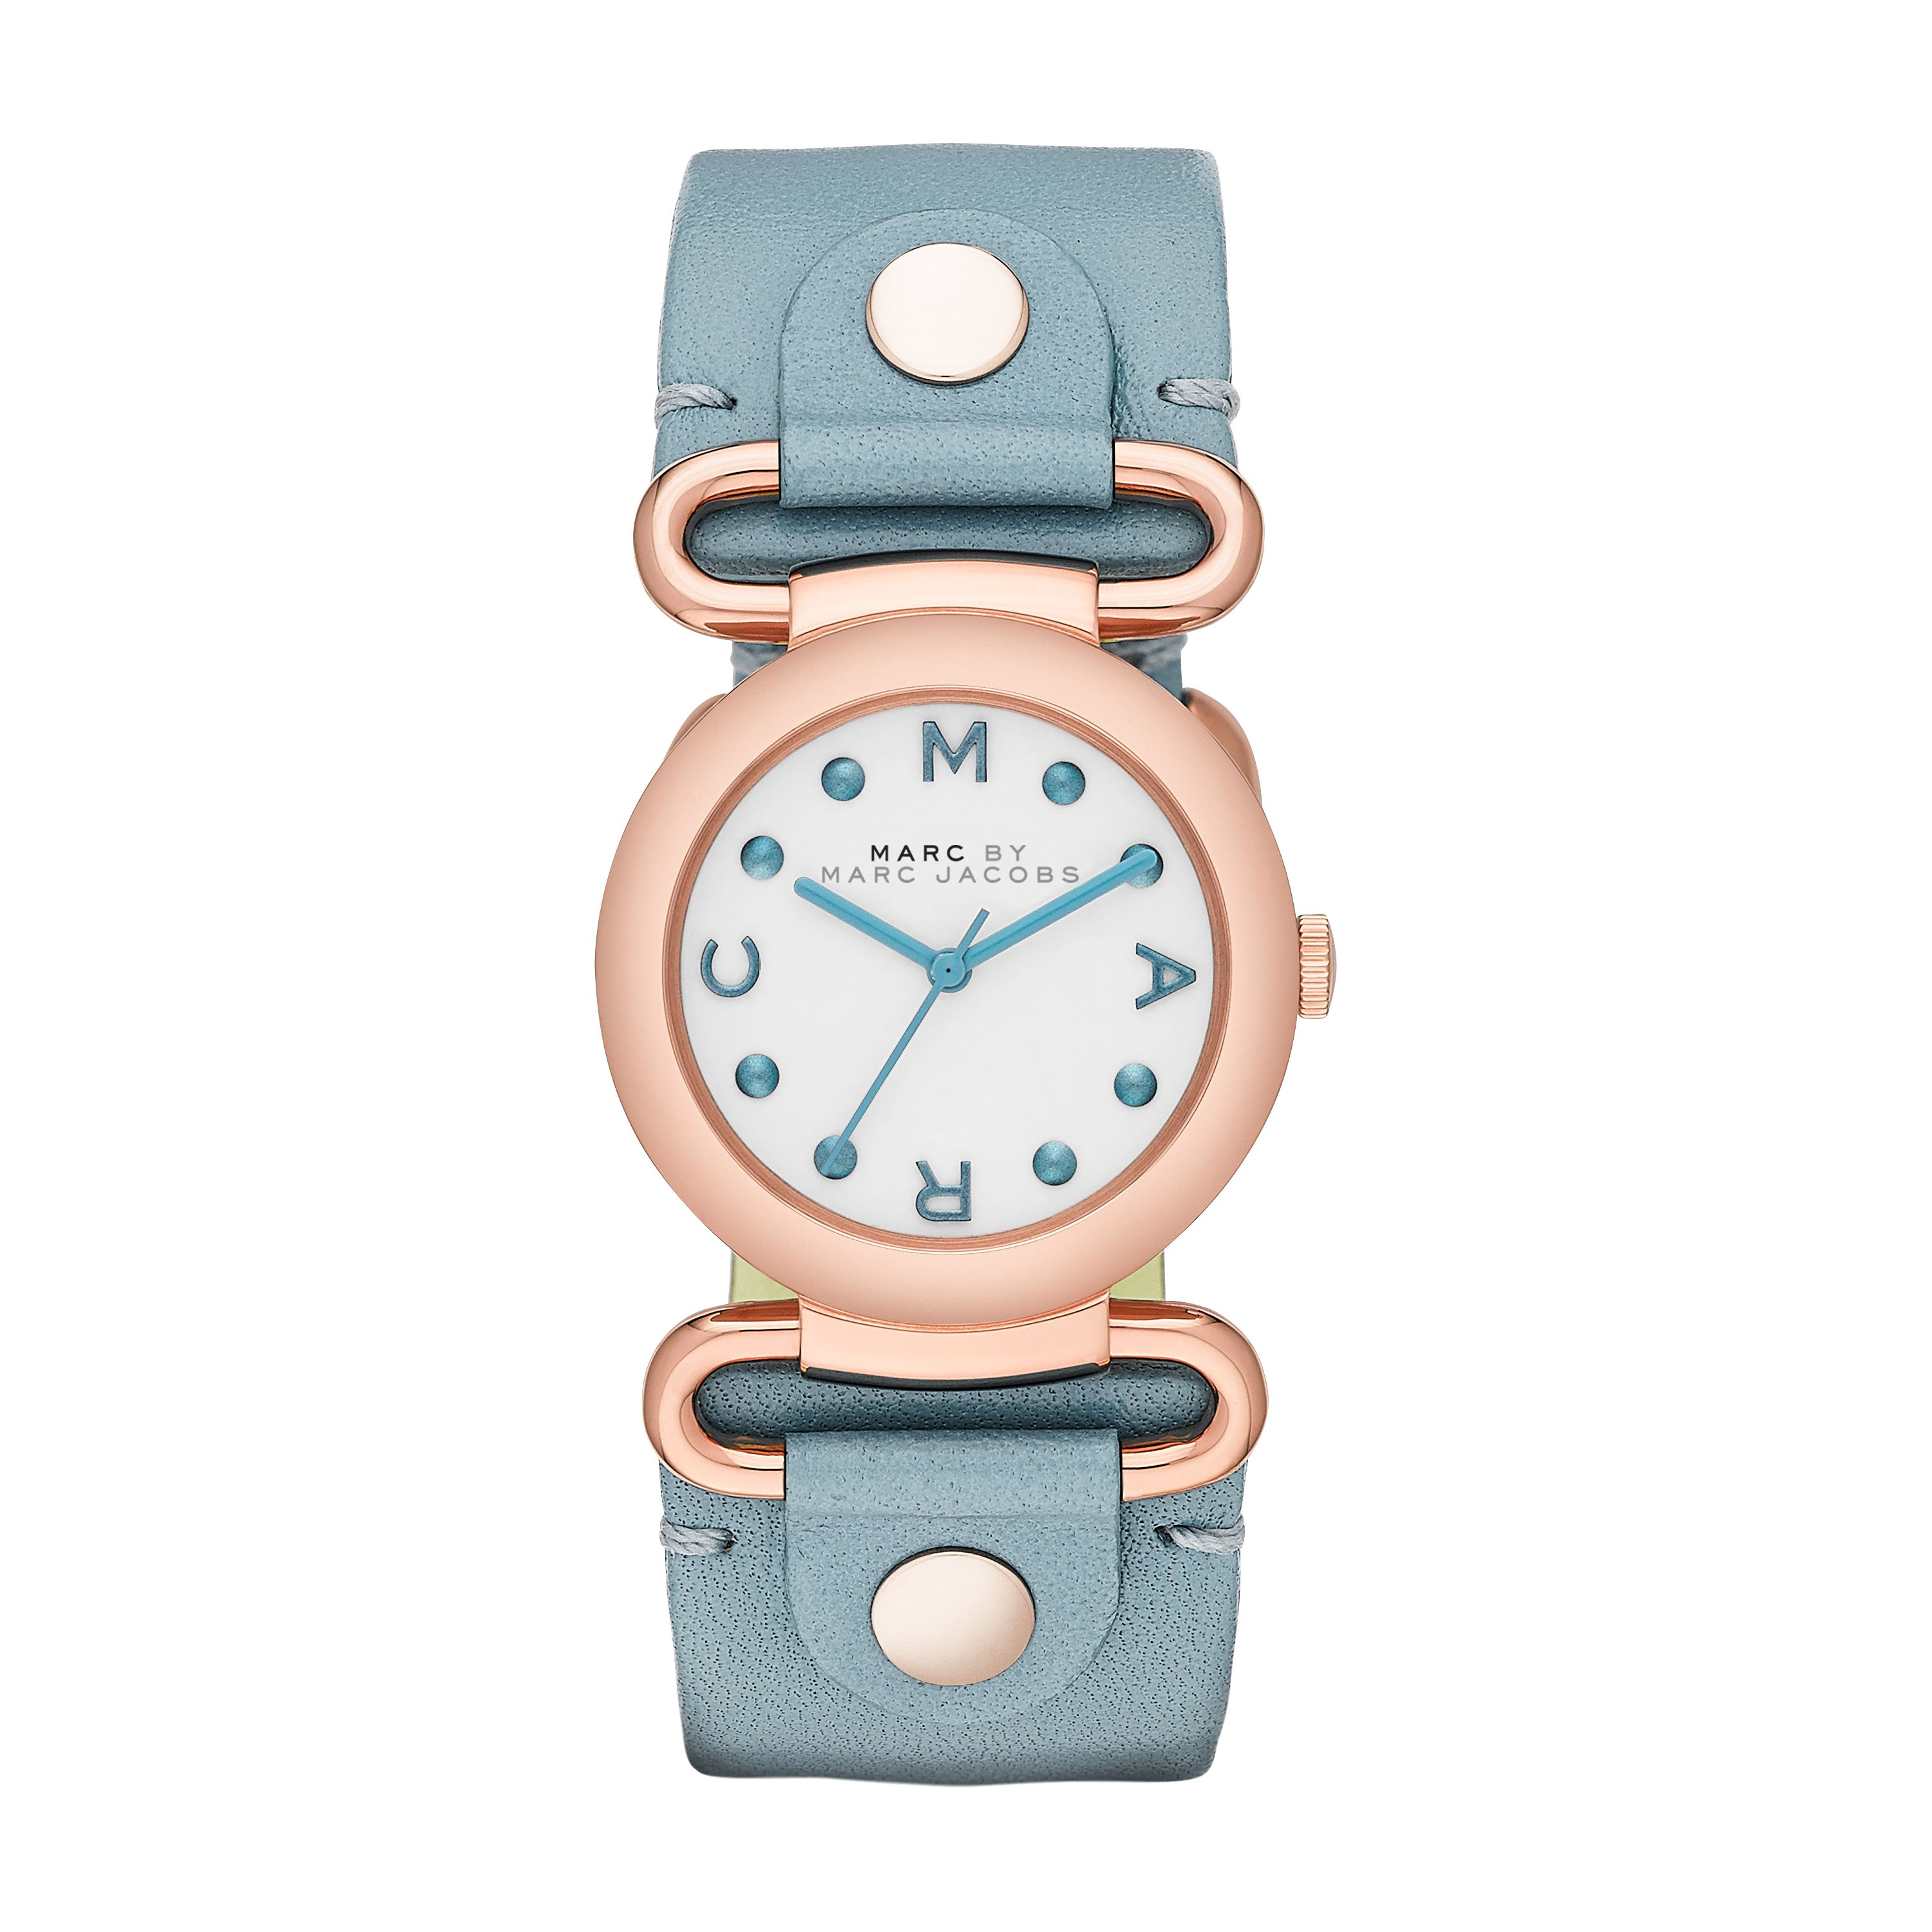 MBM1307 Molly Blue Leather Ladies Watch